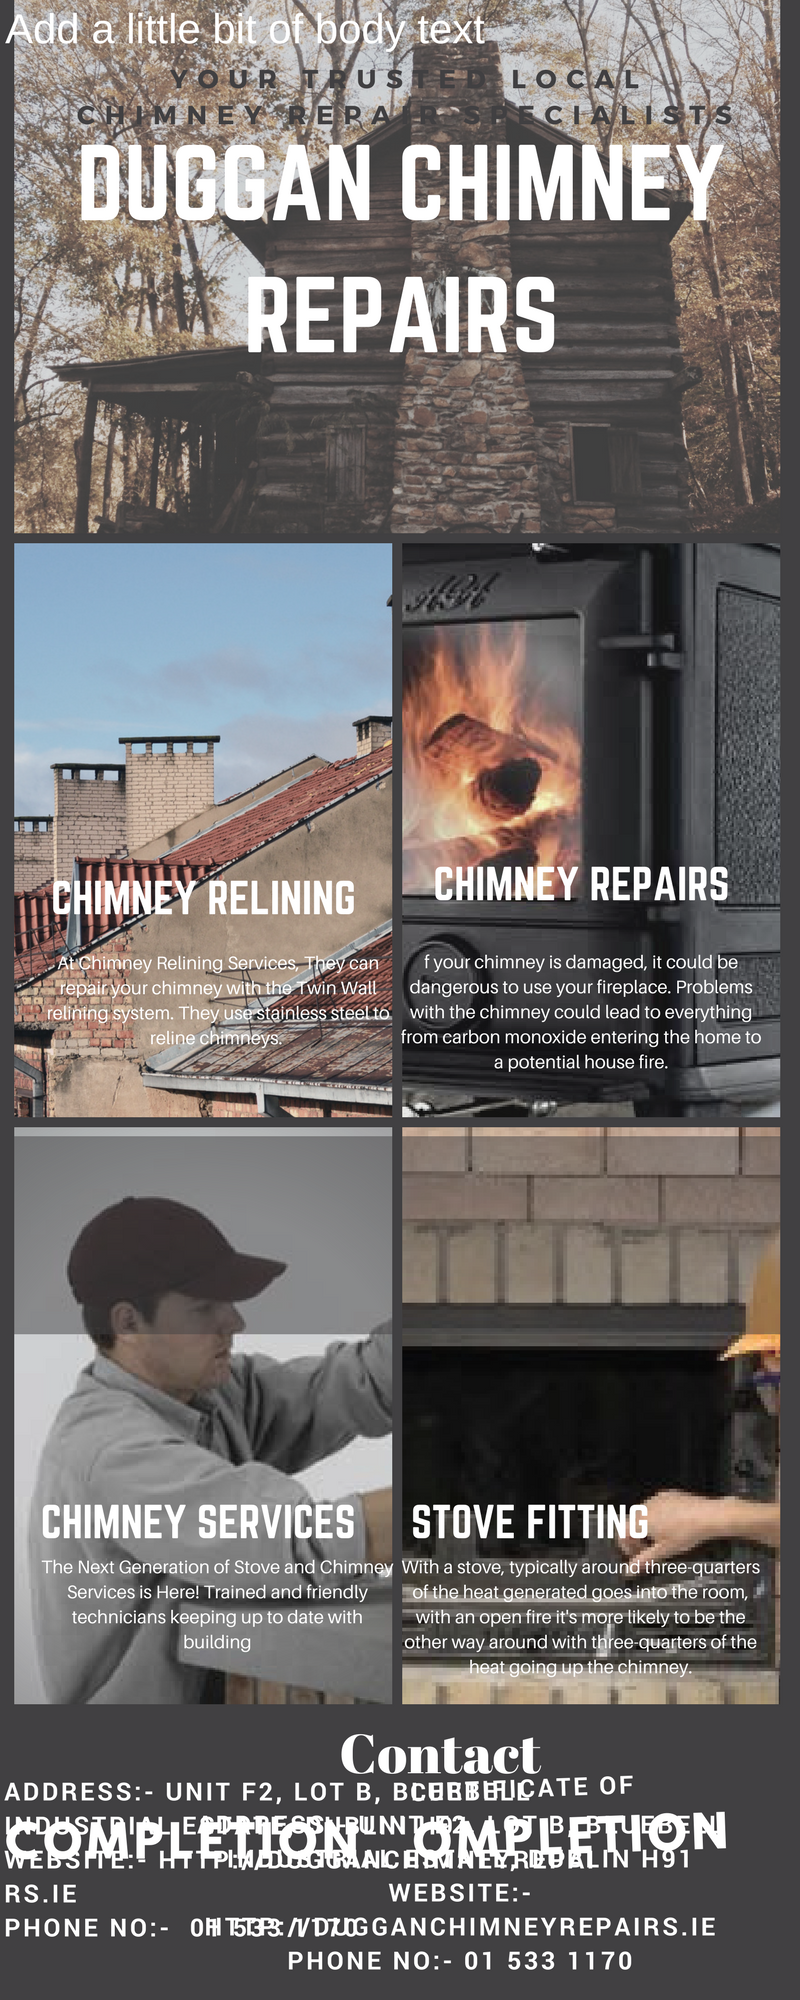 Find The Stove Fitting And Best Chimney Repair Chimney Relining